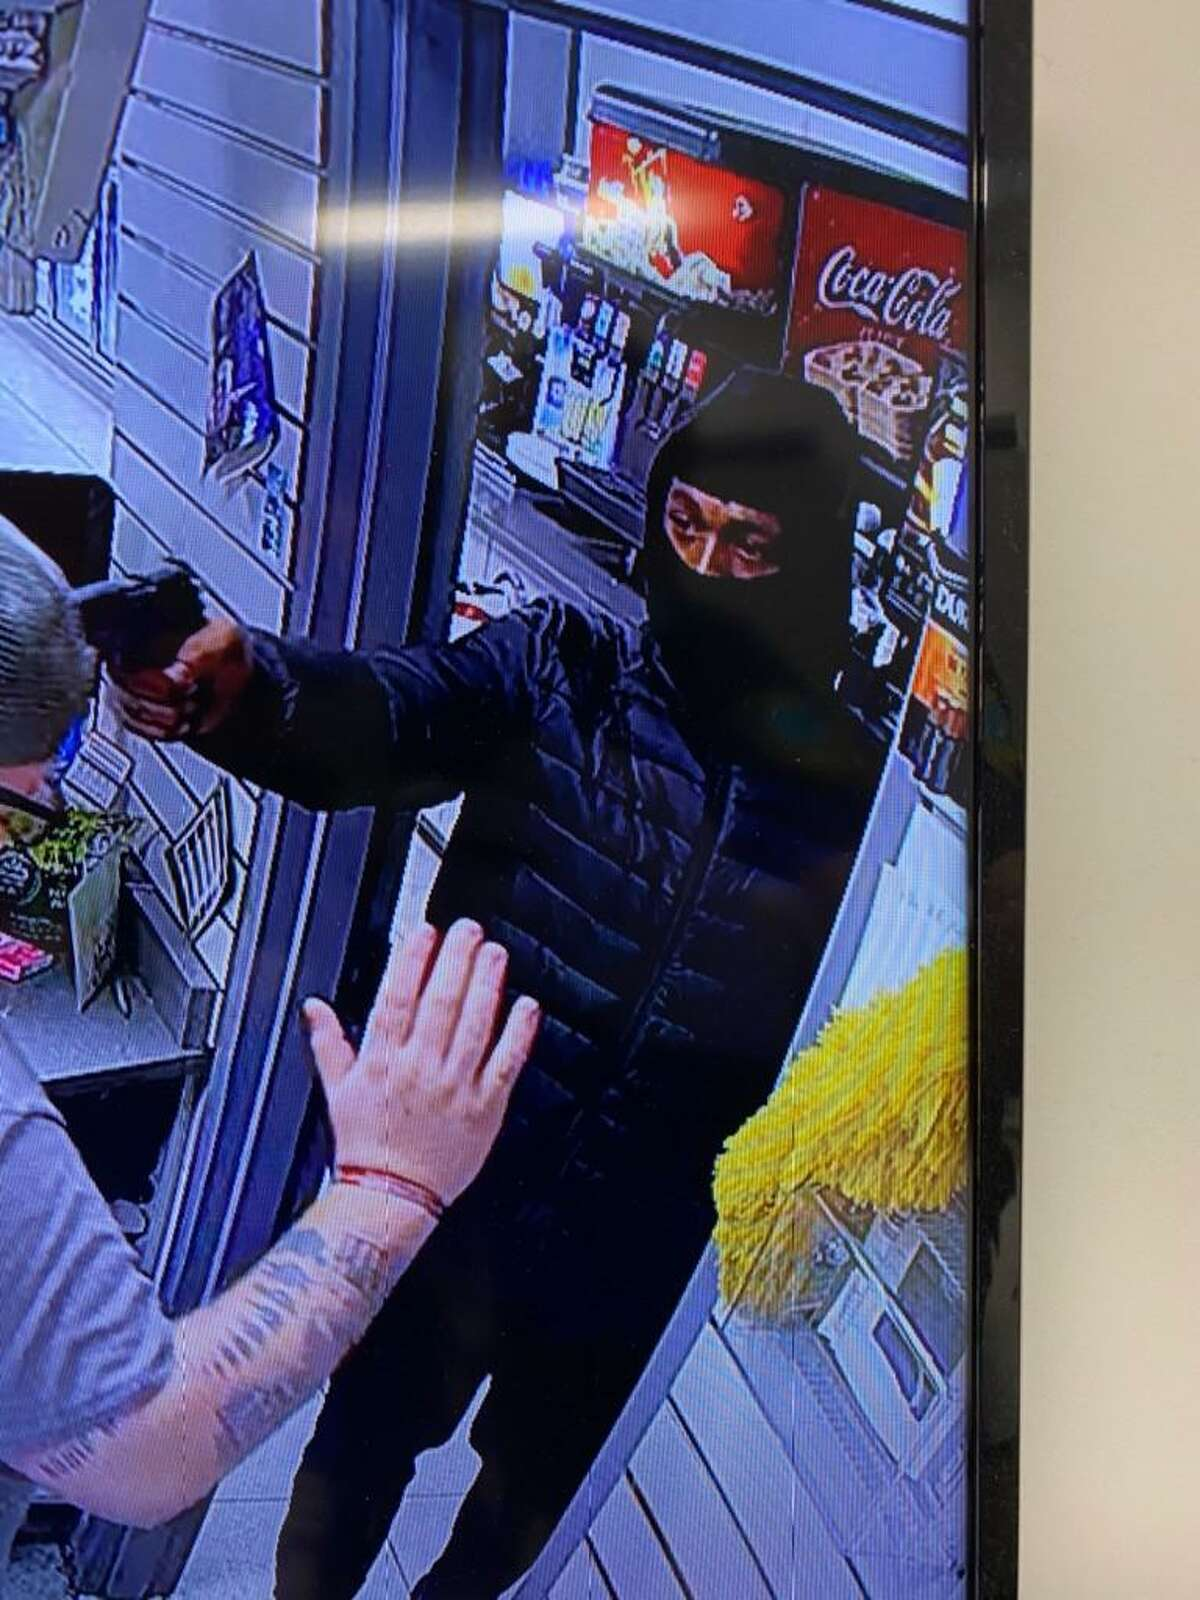 East Haven police are seeking information on this man in connection with an alleged armed robbery at the Forbes Gas Station at 863 North High St.